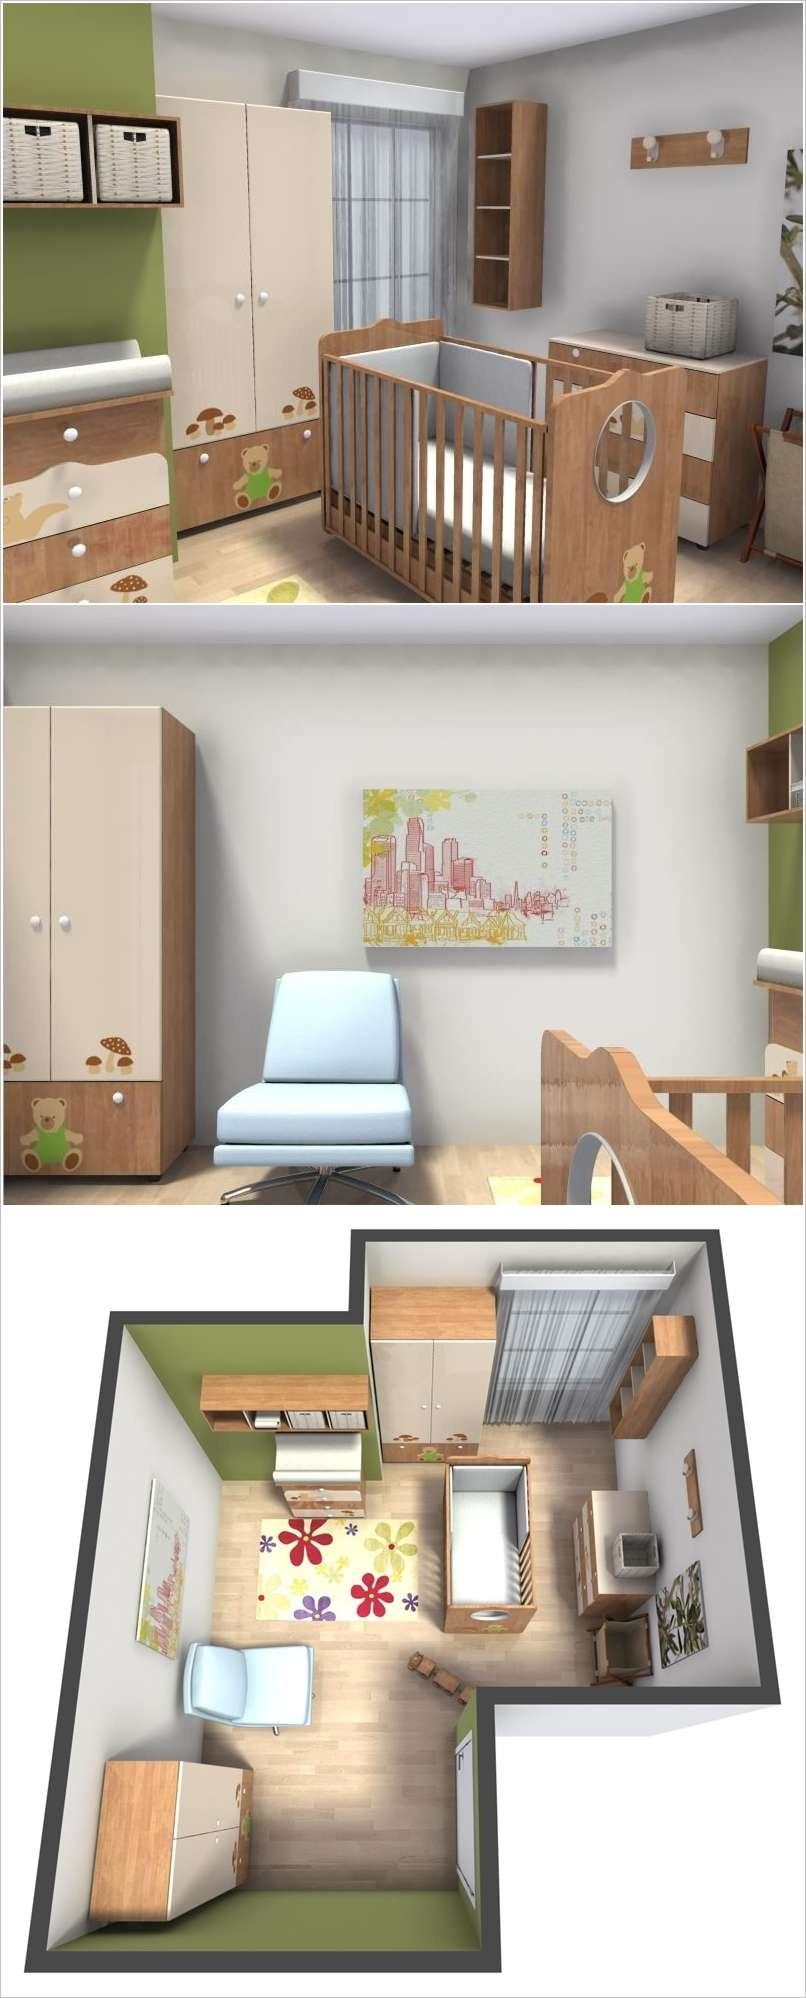 3d Create Your Own Room: 10 Best Designs Of RoomSketcher; A Wonderful 3D Design